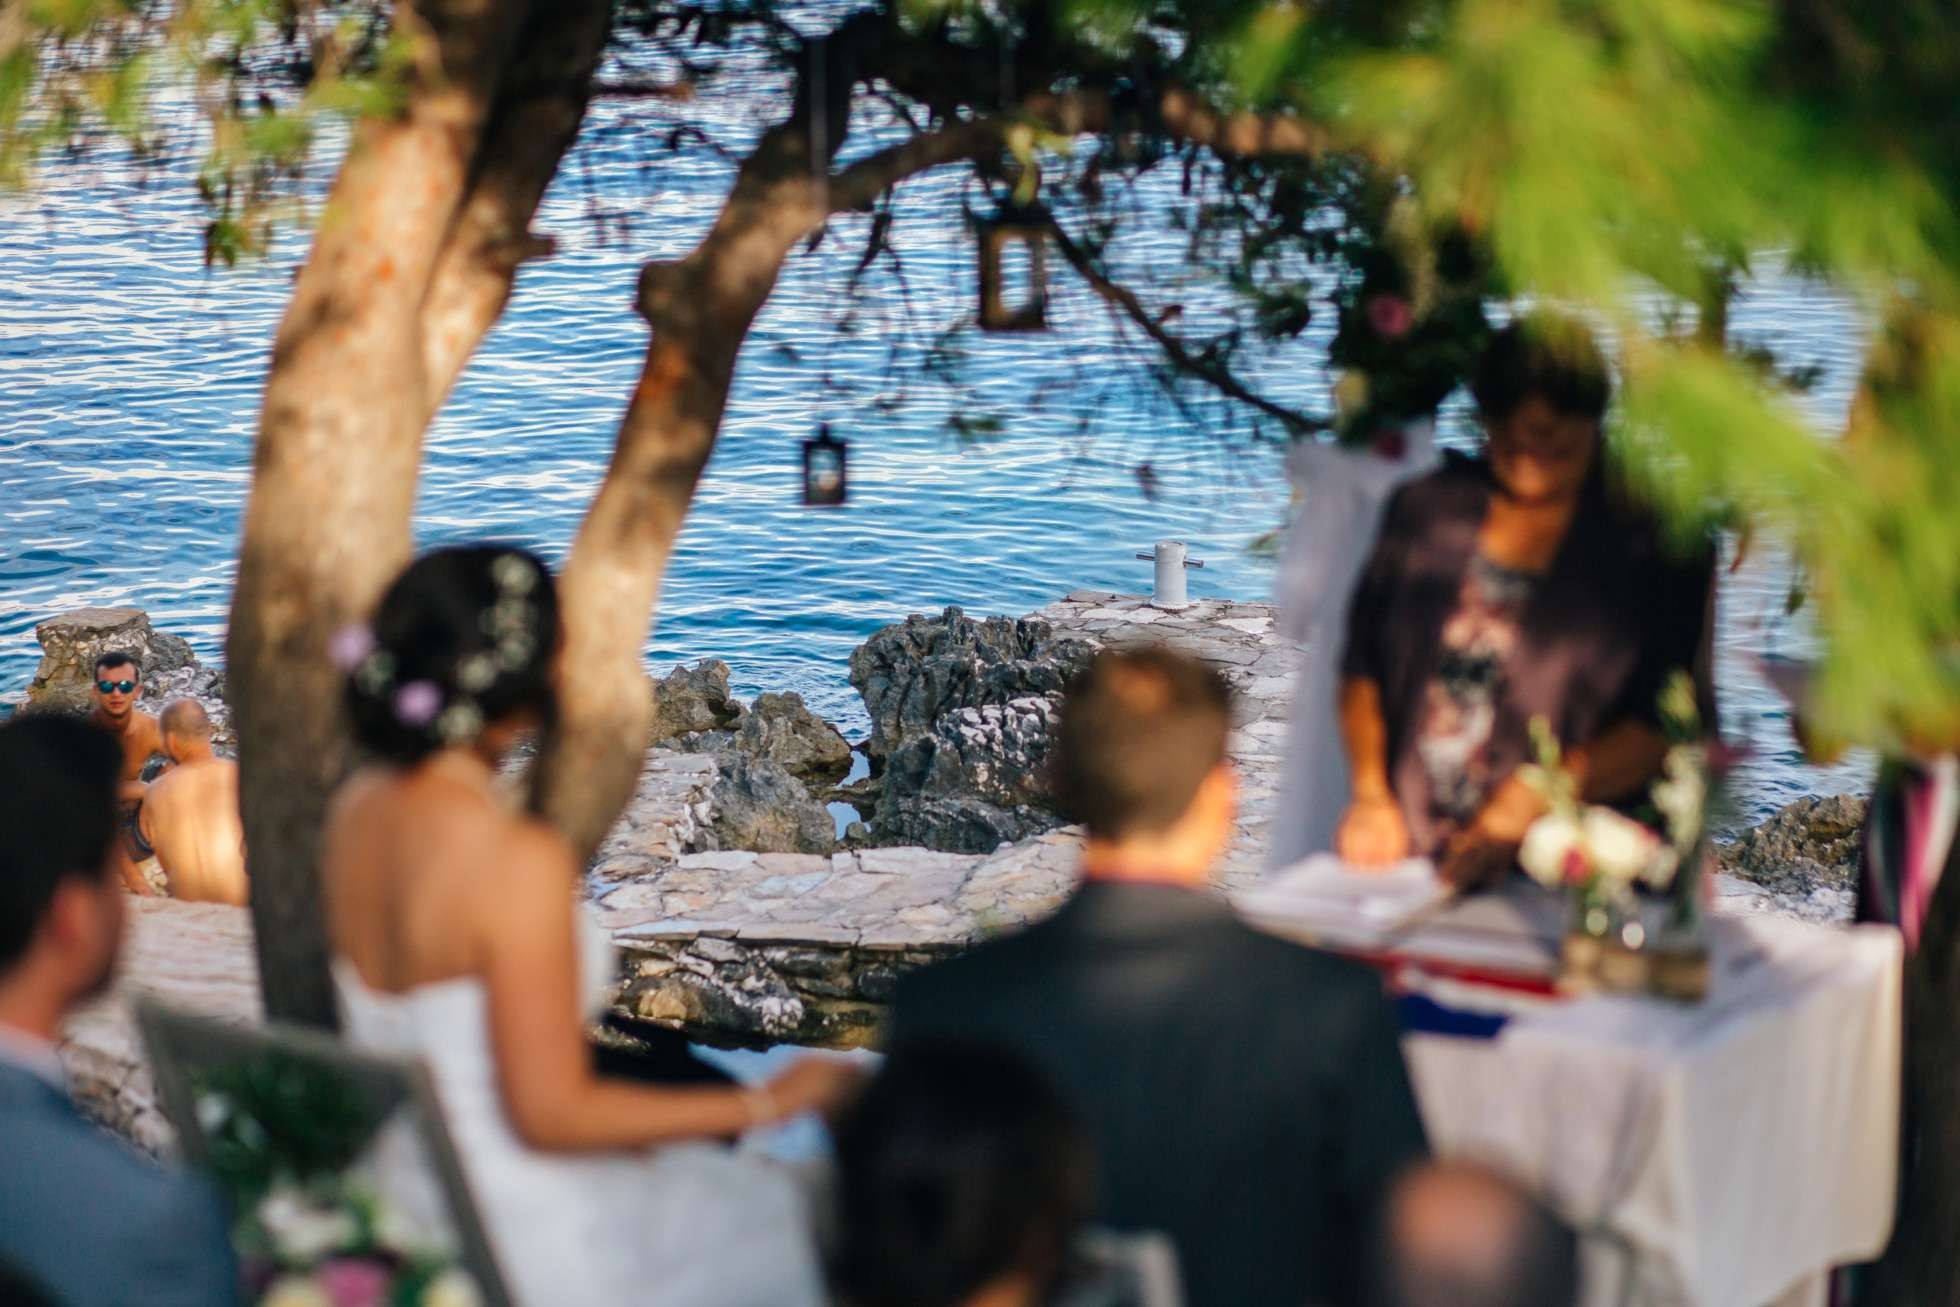 trauung; ceremony; trogir; heiraten in trogir; hochzeit in trogir; wedding planner trogir; wedding planner croatia; destination wedding planner; hochzeitsplaner trogir; hochzeitsplaner kroatien; marrytale